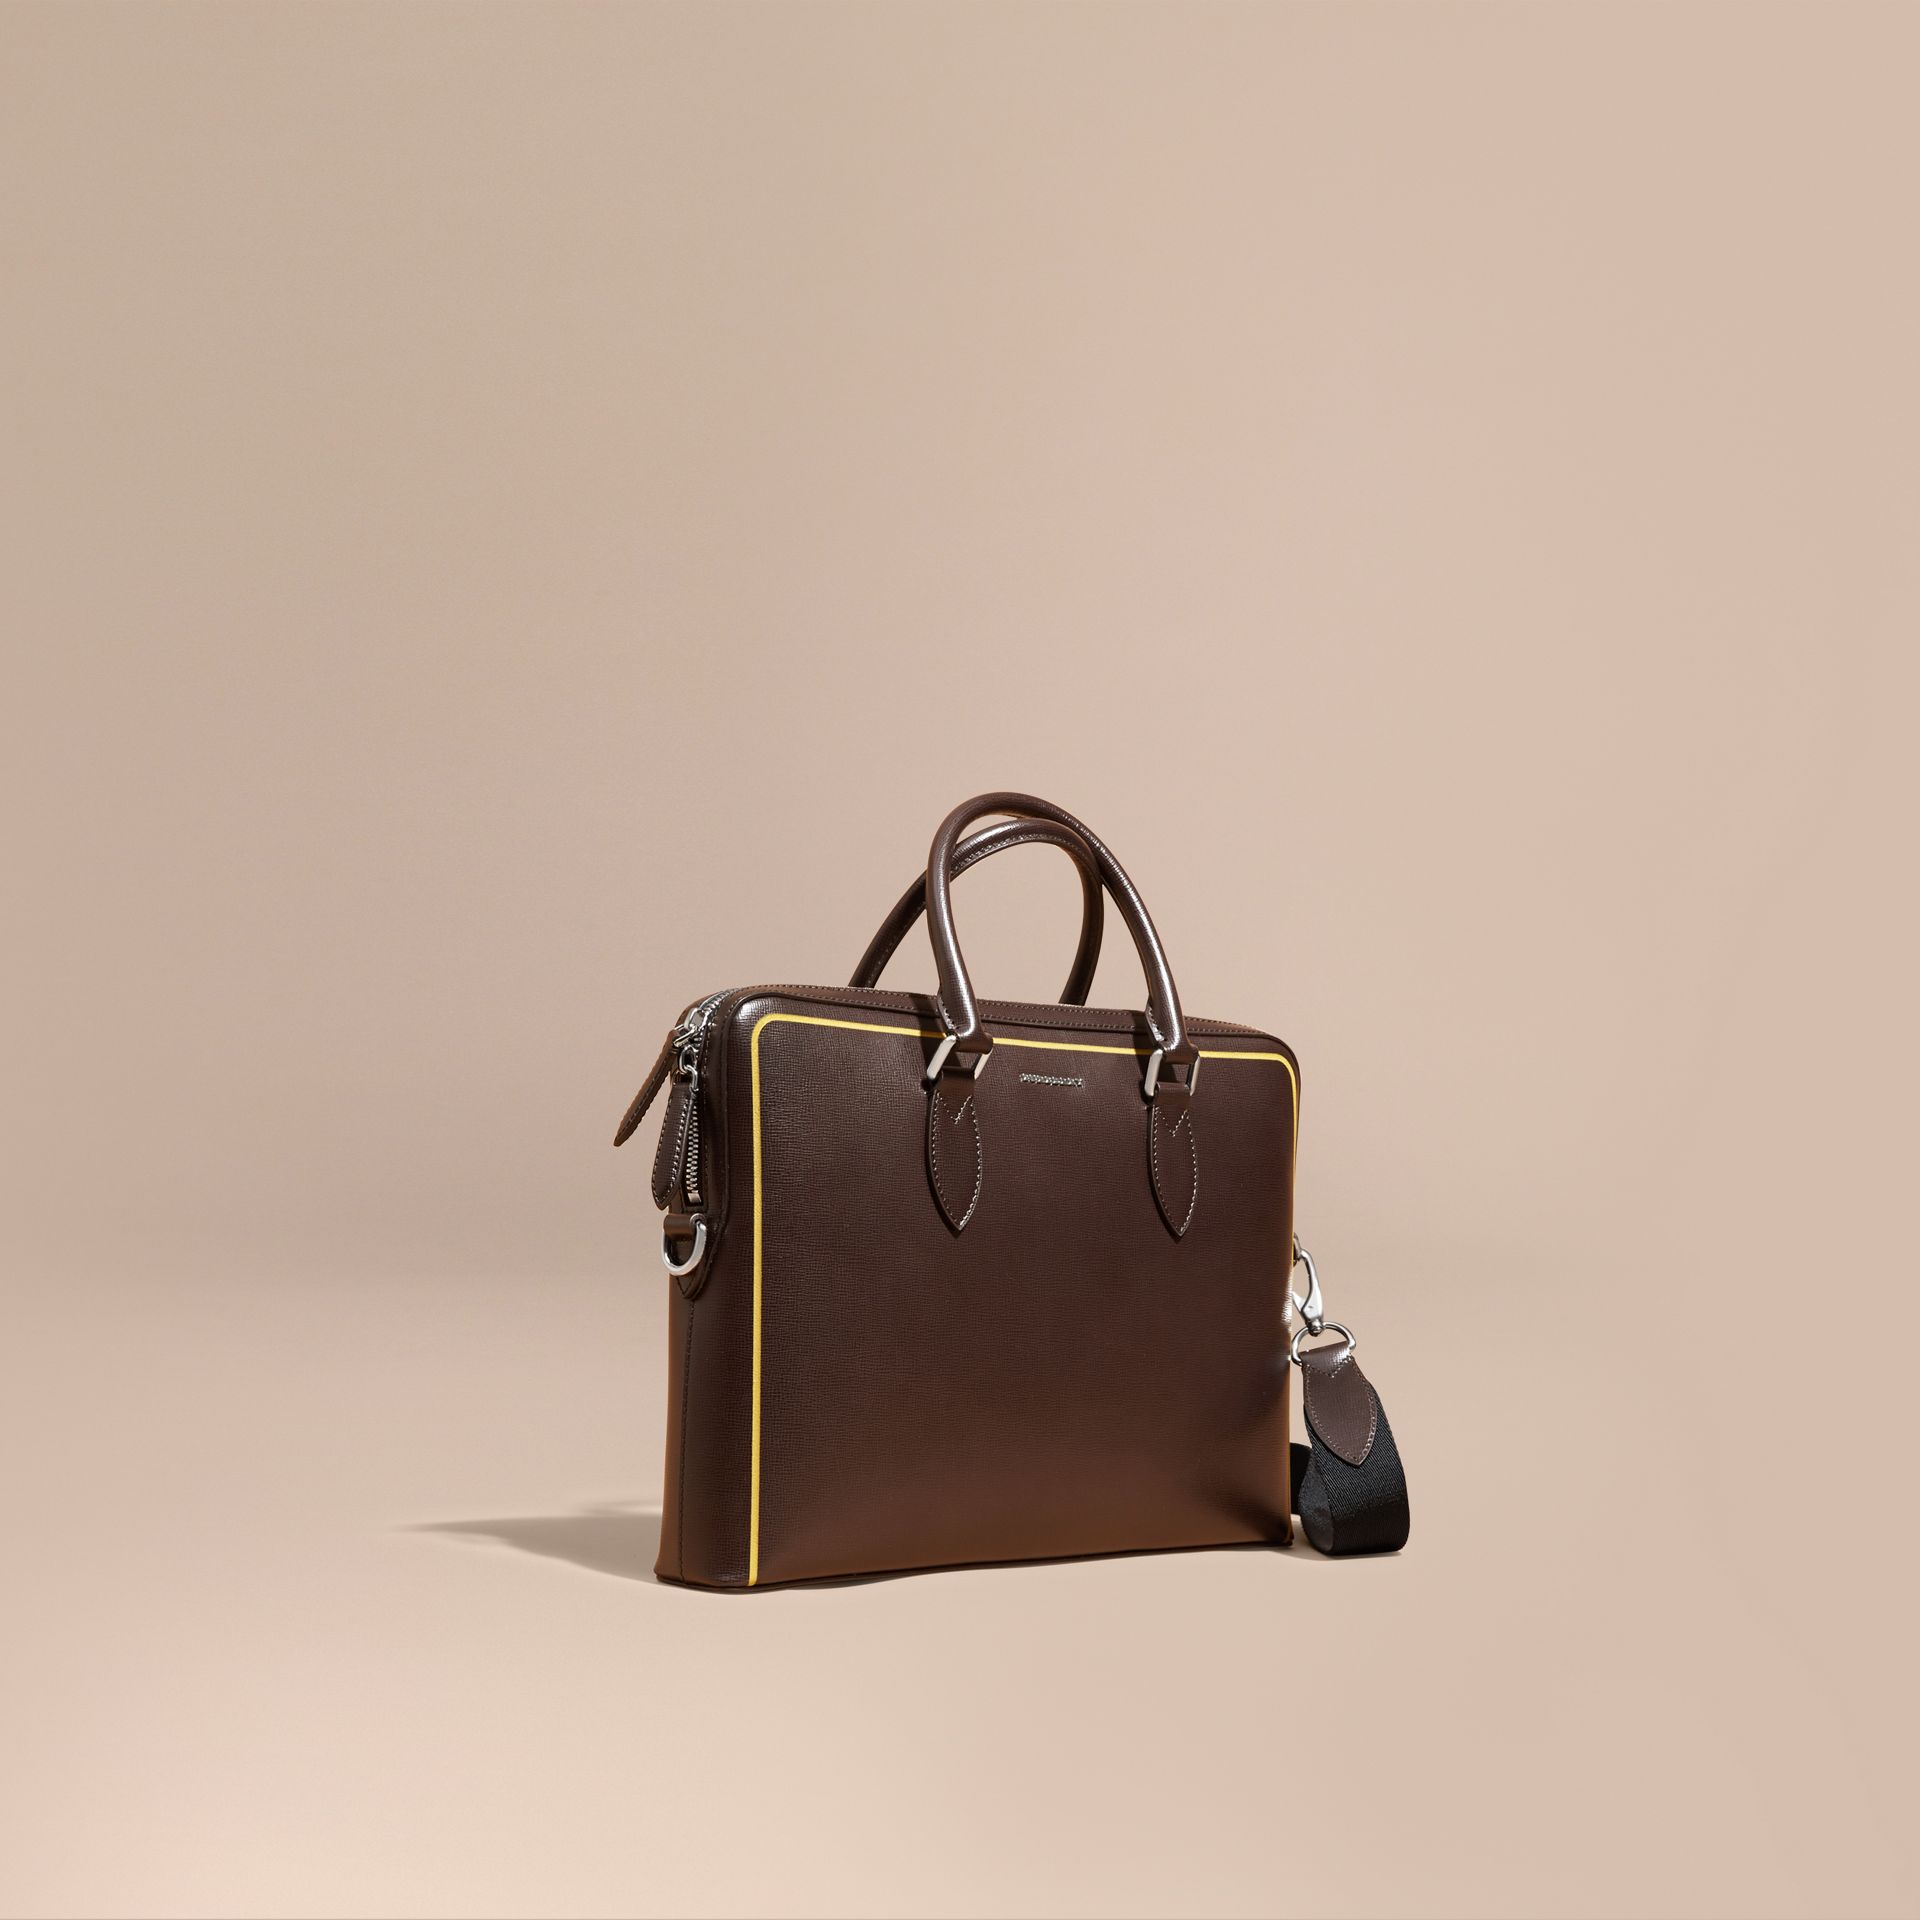 Sac The Barrow fin en cuir London avec bordure contrastante (Poivre) - Homme | Burberry - photo de la galerie 1